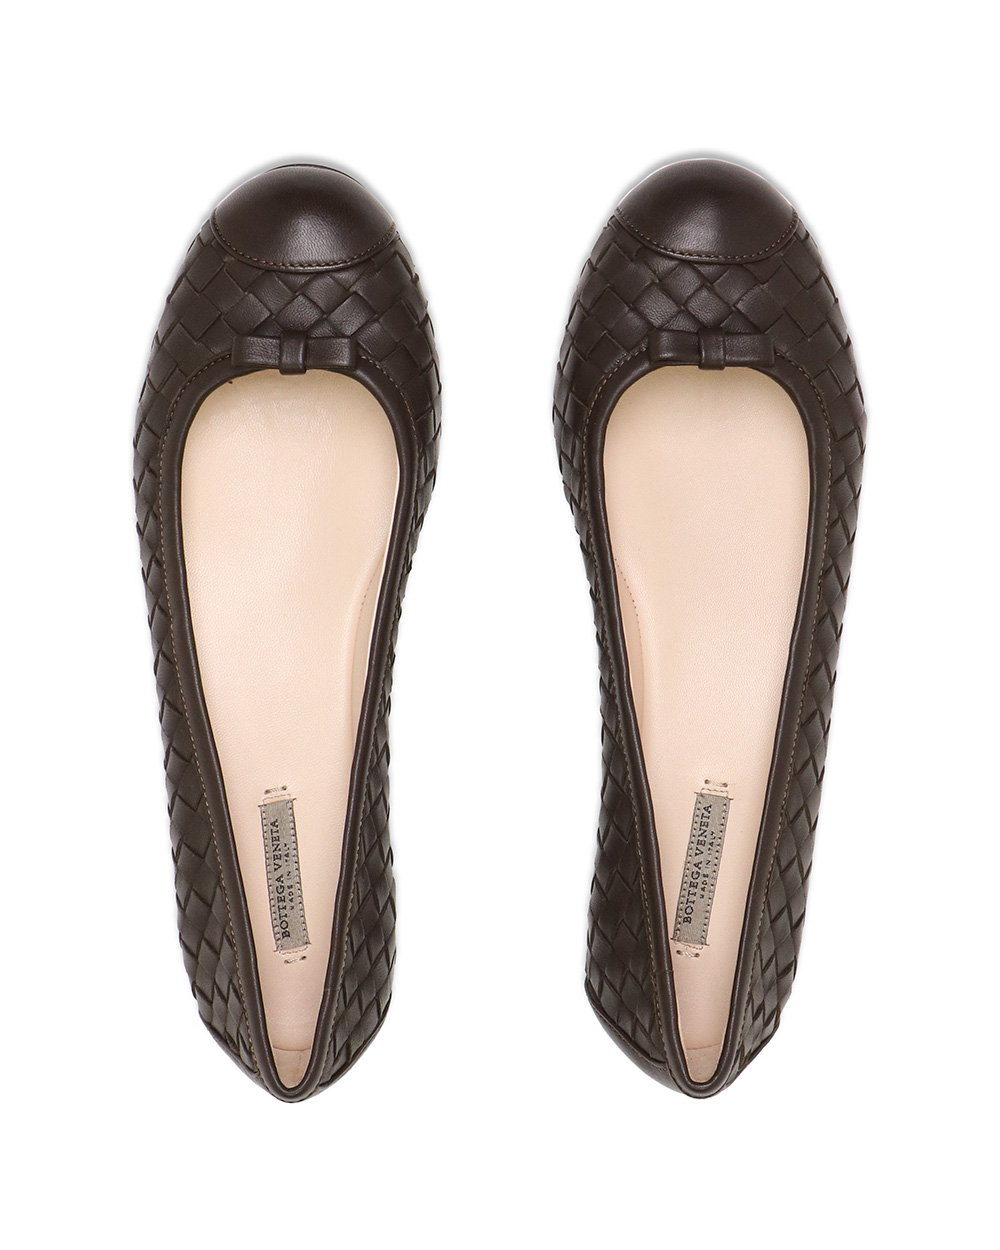 Leather Woven Flats 3